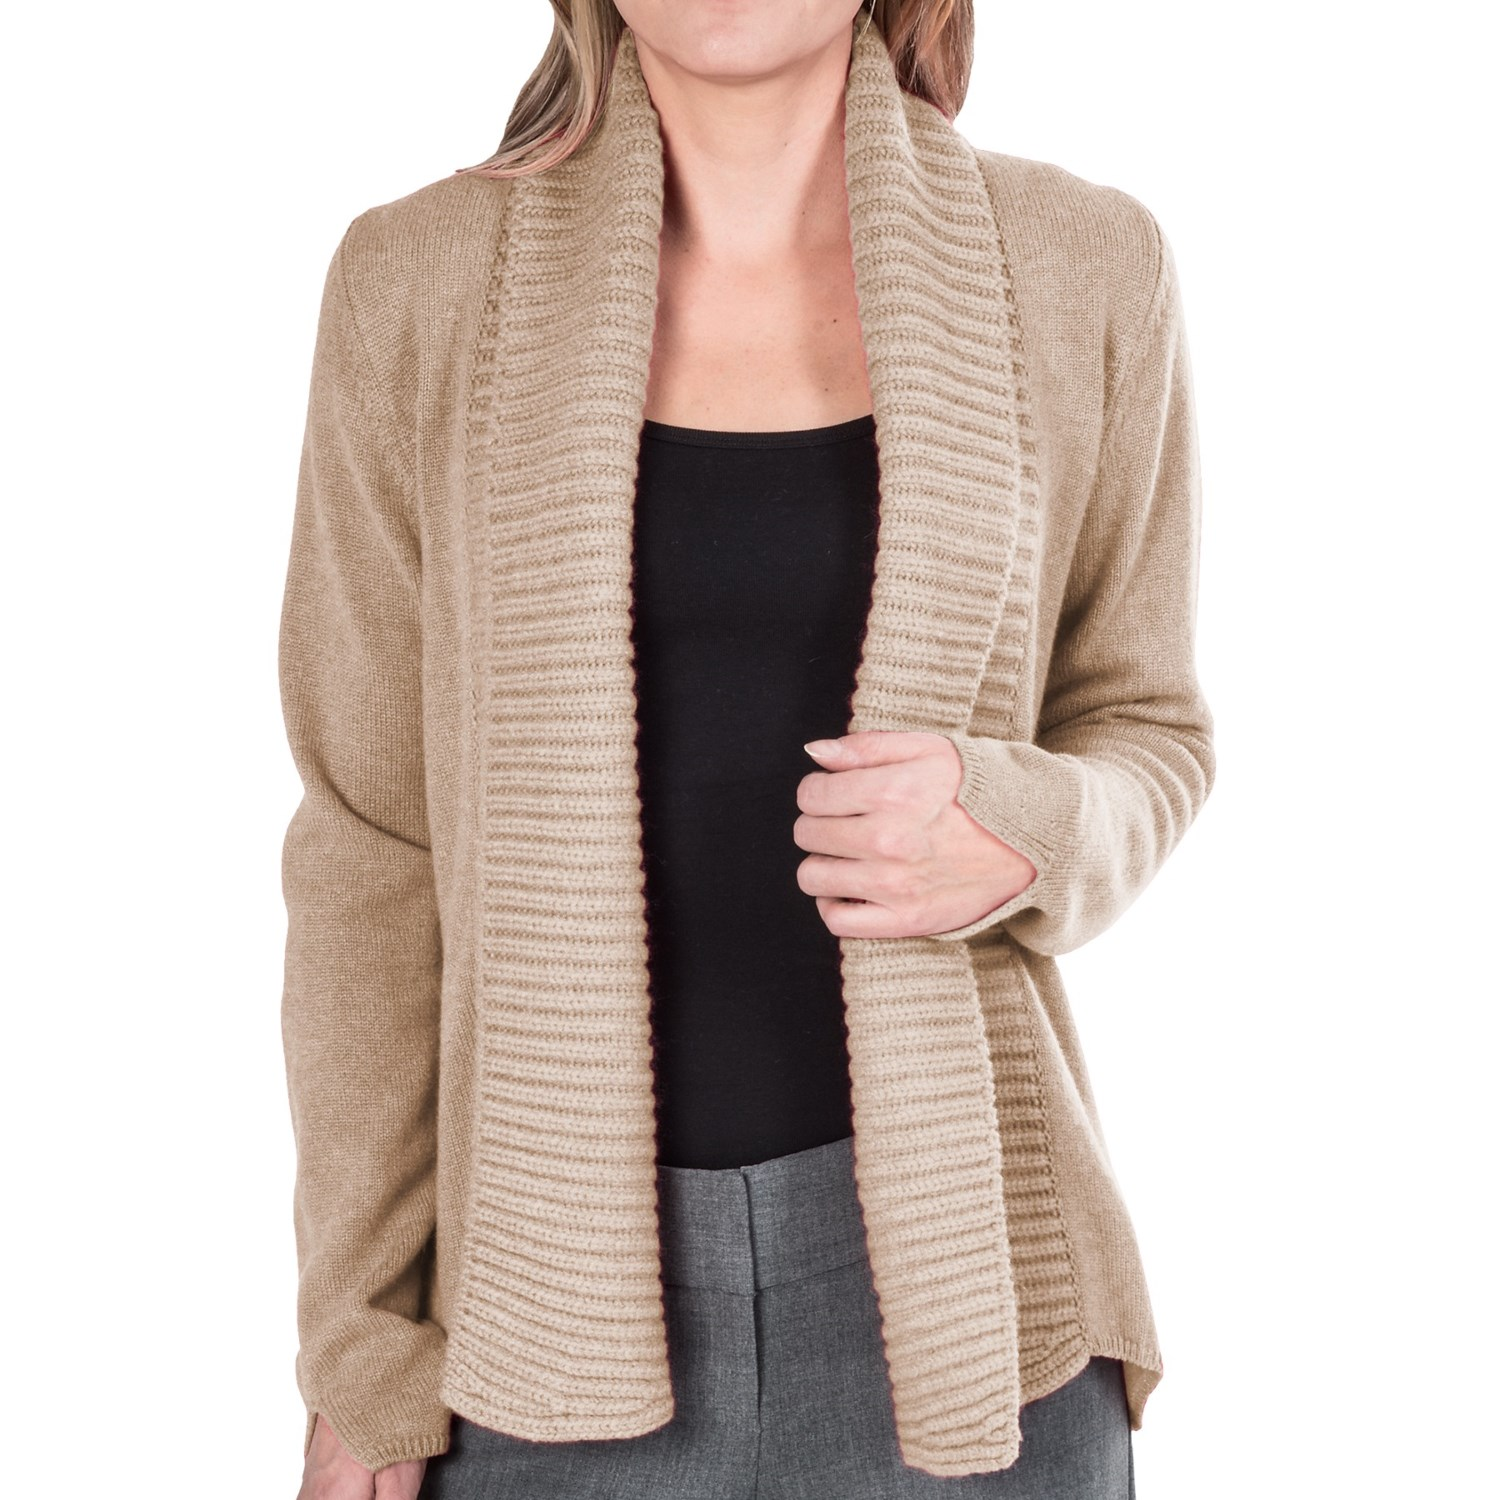 Find great deals on eBay for women's shawl collar sweater. Shop with confidence.